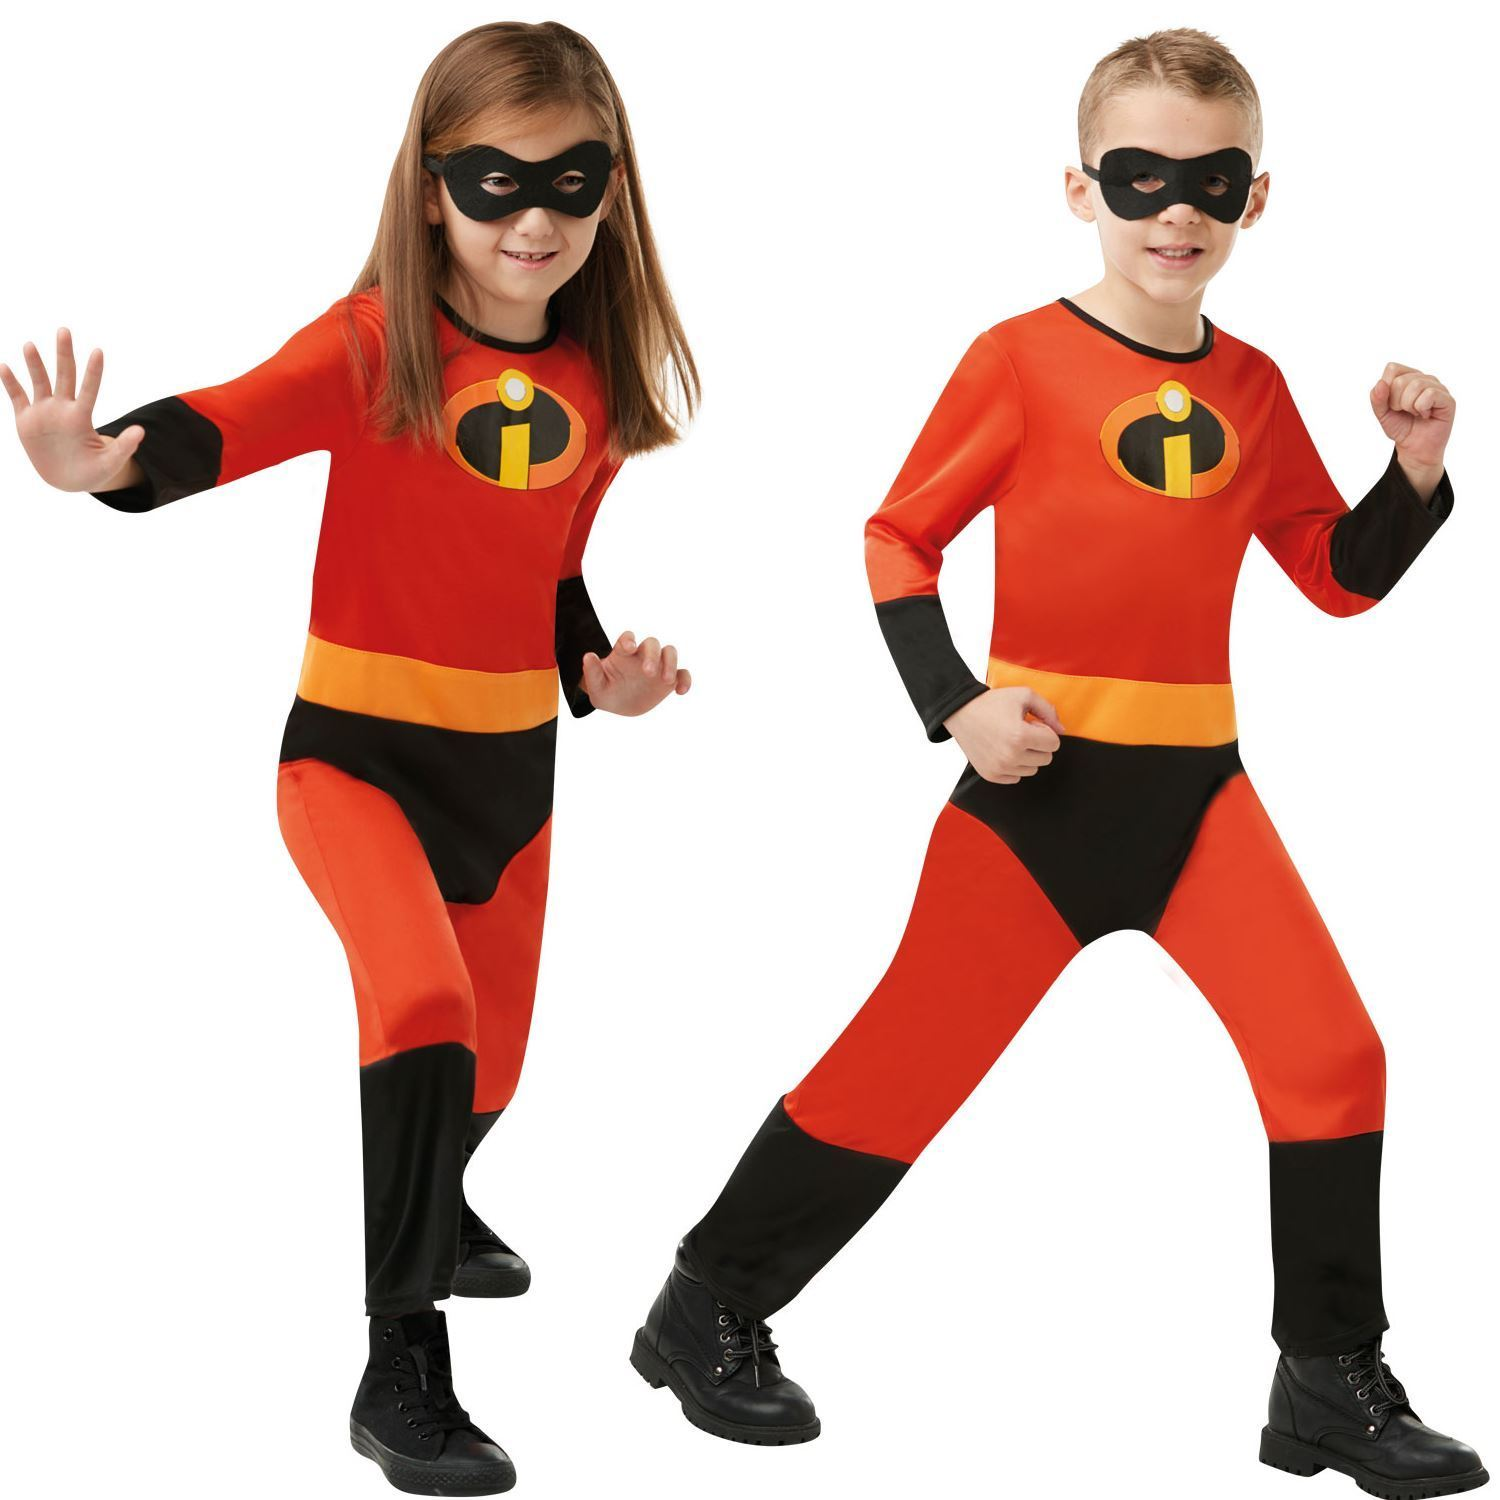 The Incredibles Family Costume Matching Cosplay Elastigirl Violet Parr suit uk